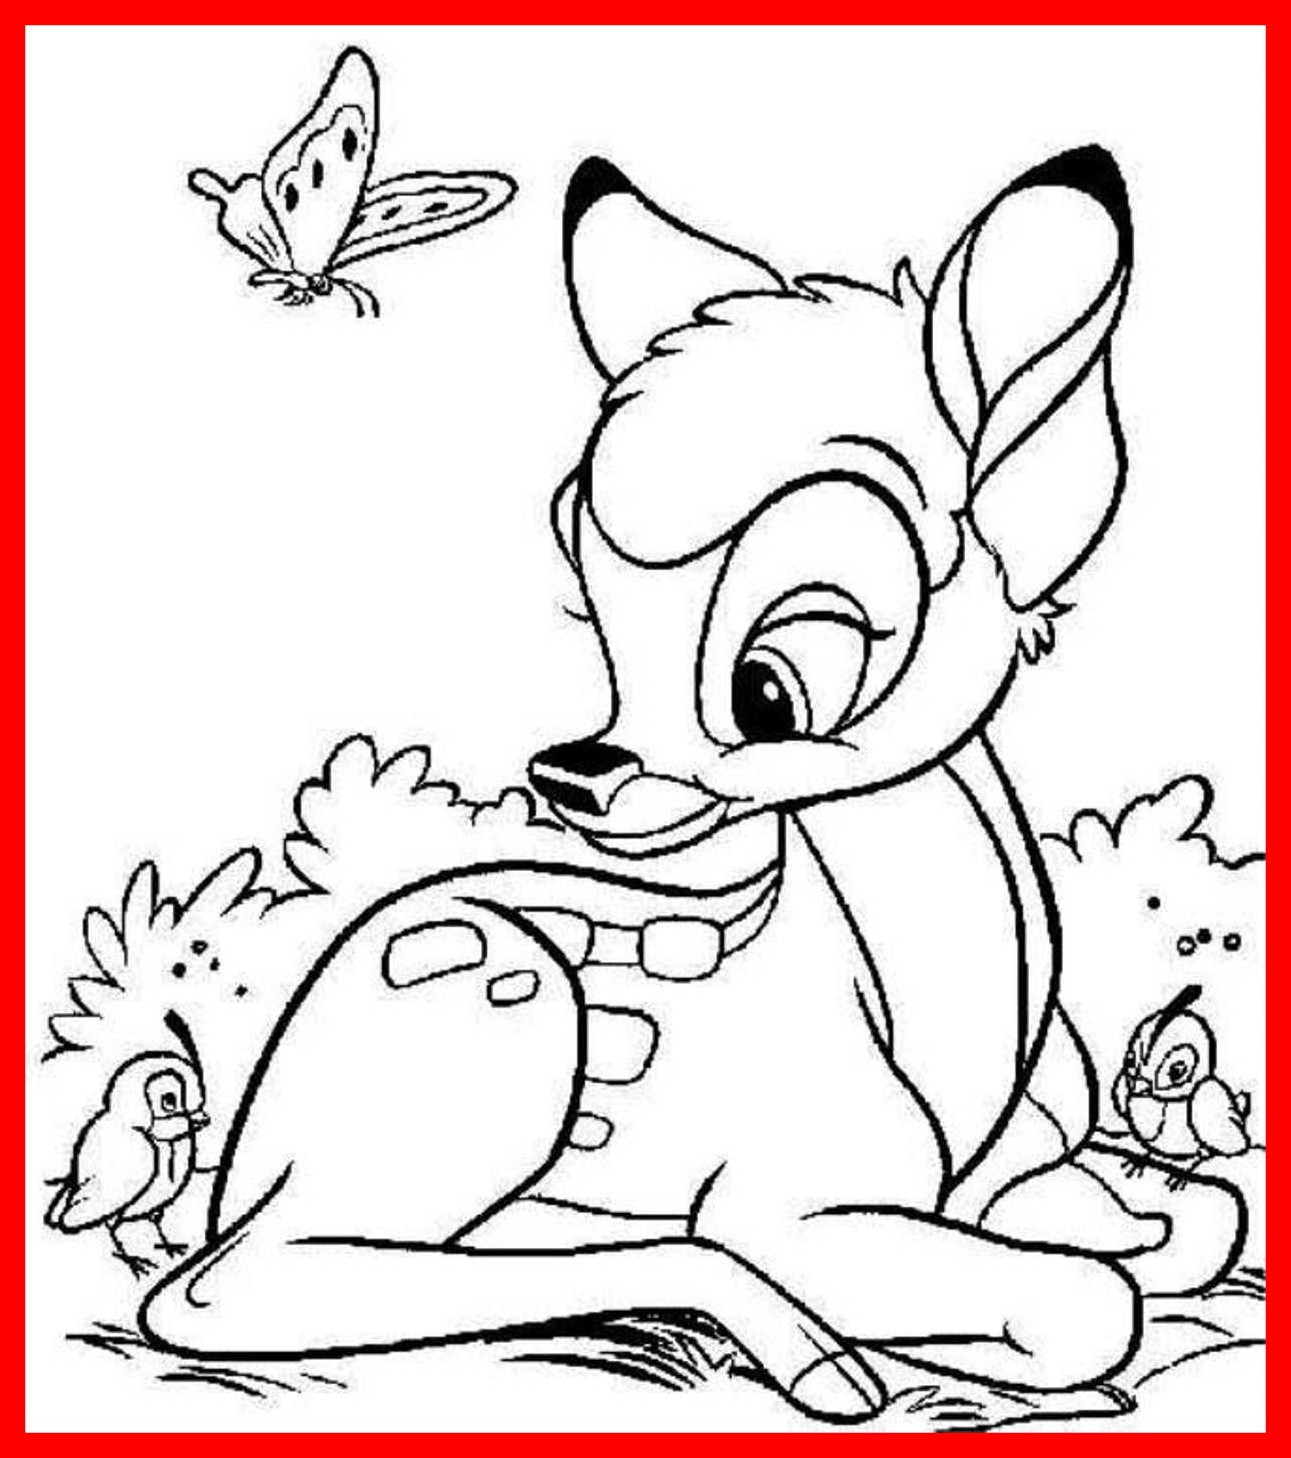 1291x1458 Fascinating Bambi Coloring Pages Printable Of Disney Cute Trends